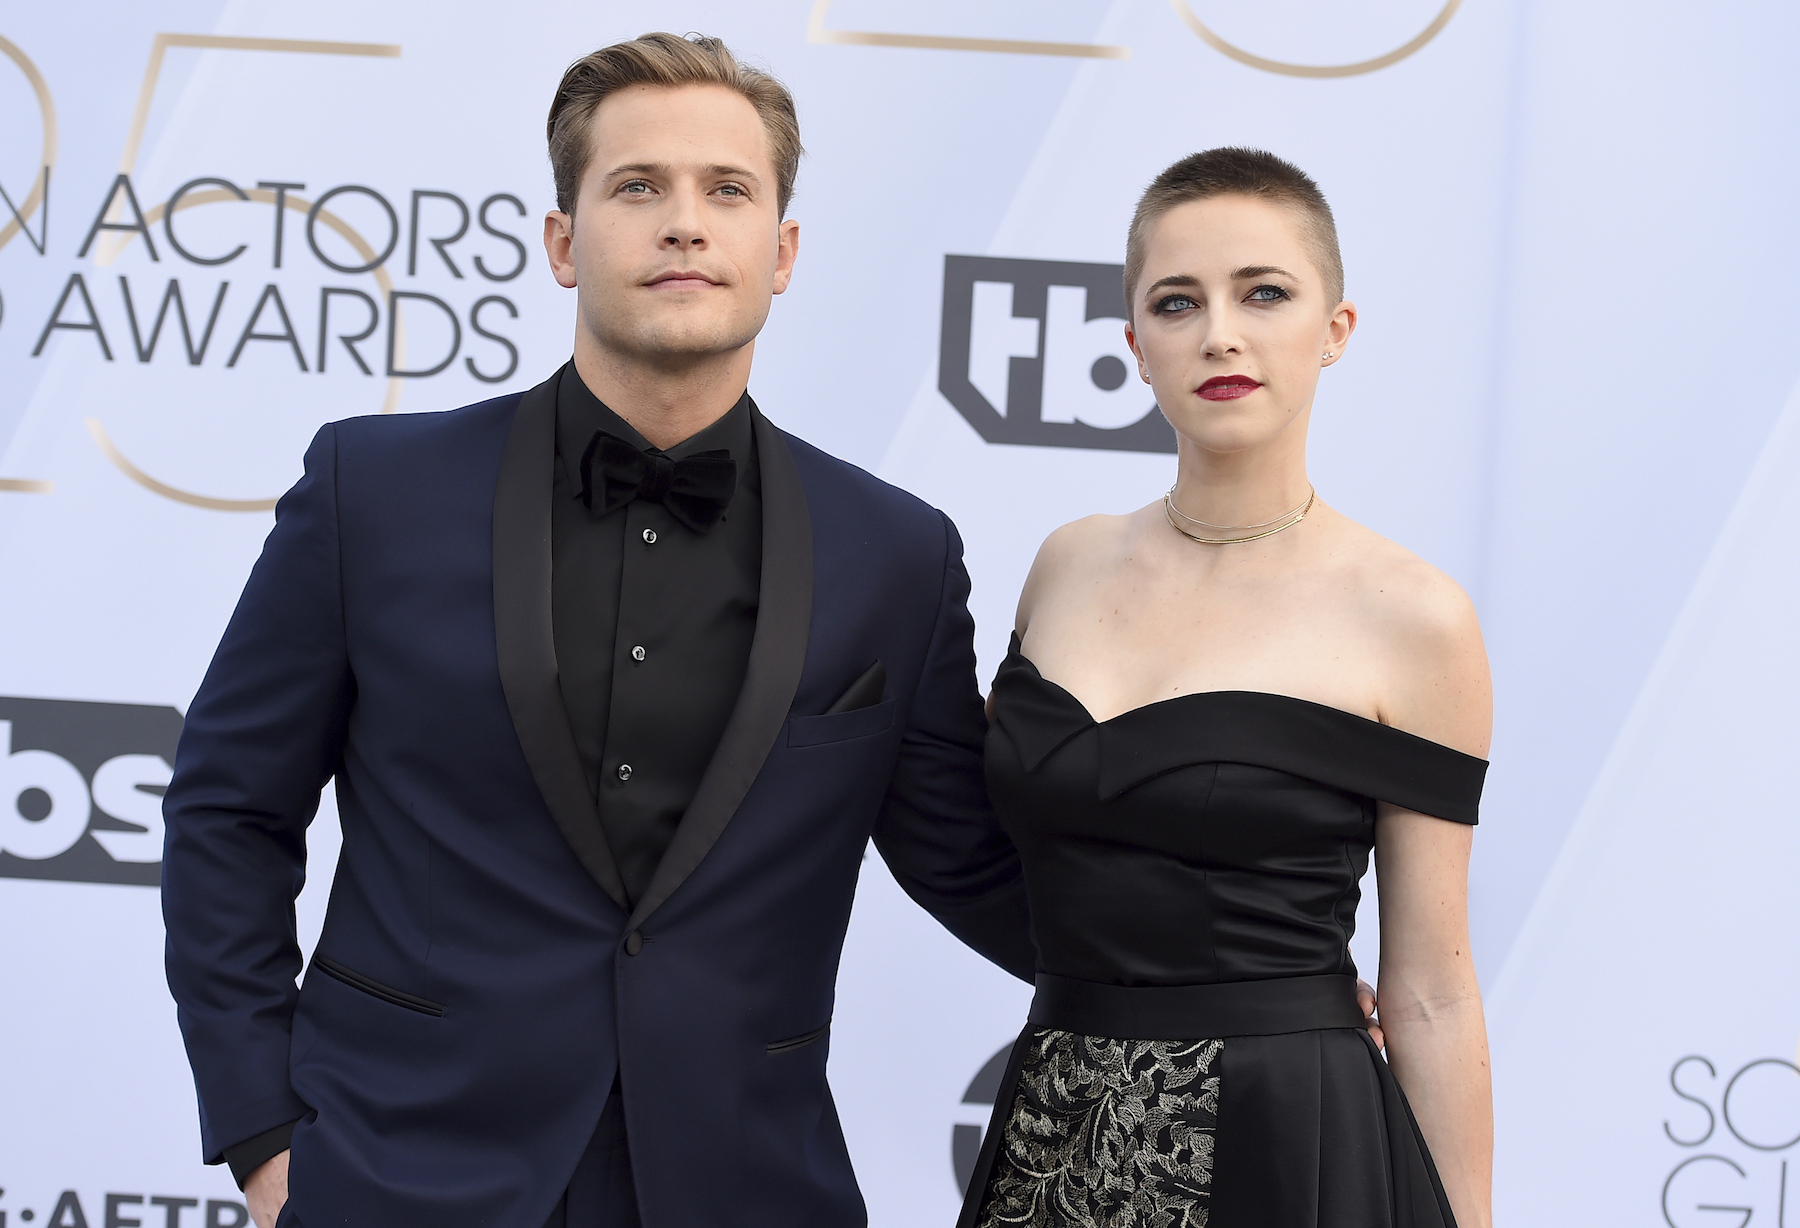 "<div class=""meta image-caption""><div class=""origin-logo origin-image ap""><span>AP</span></div><span class=""caption-text"">Wyatt Nash, left, and Aubrey Swander arrive at the 25th annual Screen Actors Guild Awards at the Shrine Auditorium & Expo Hall on Sunday, Jan. 27, 2019, in Los Angeles. (Jordan Strauss/Invision/AP)</span></div>"